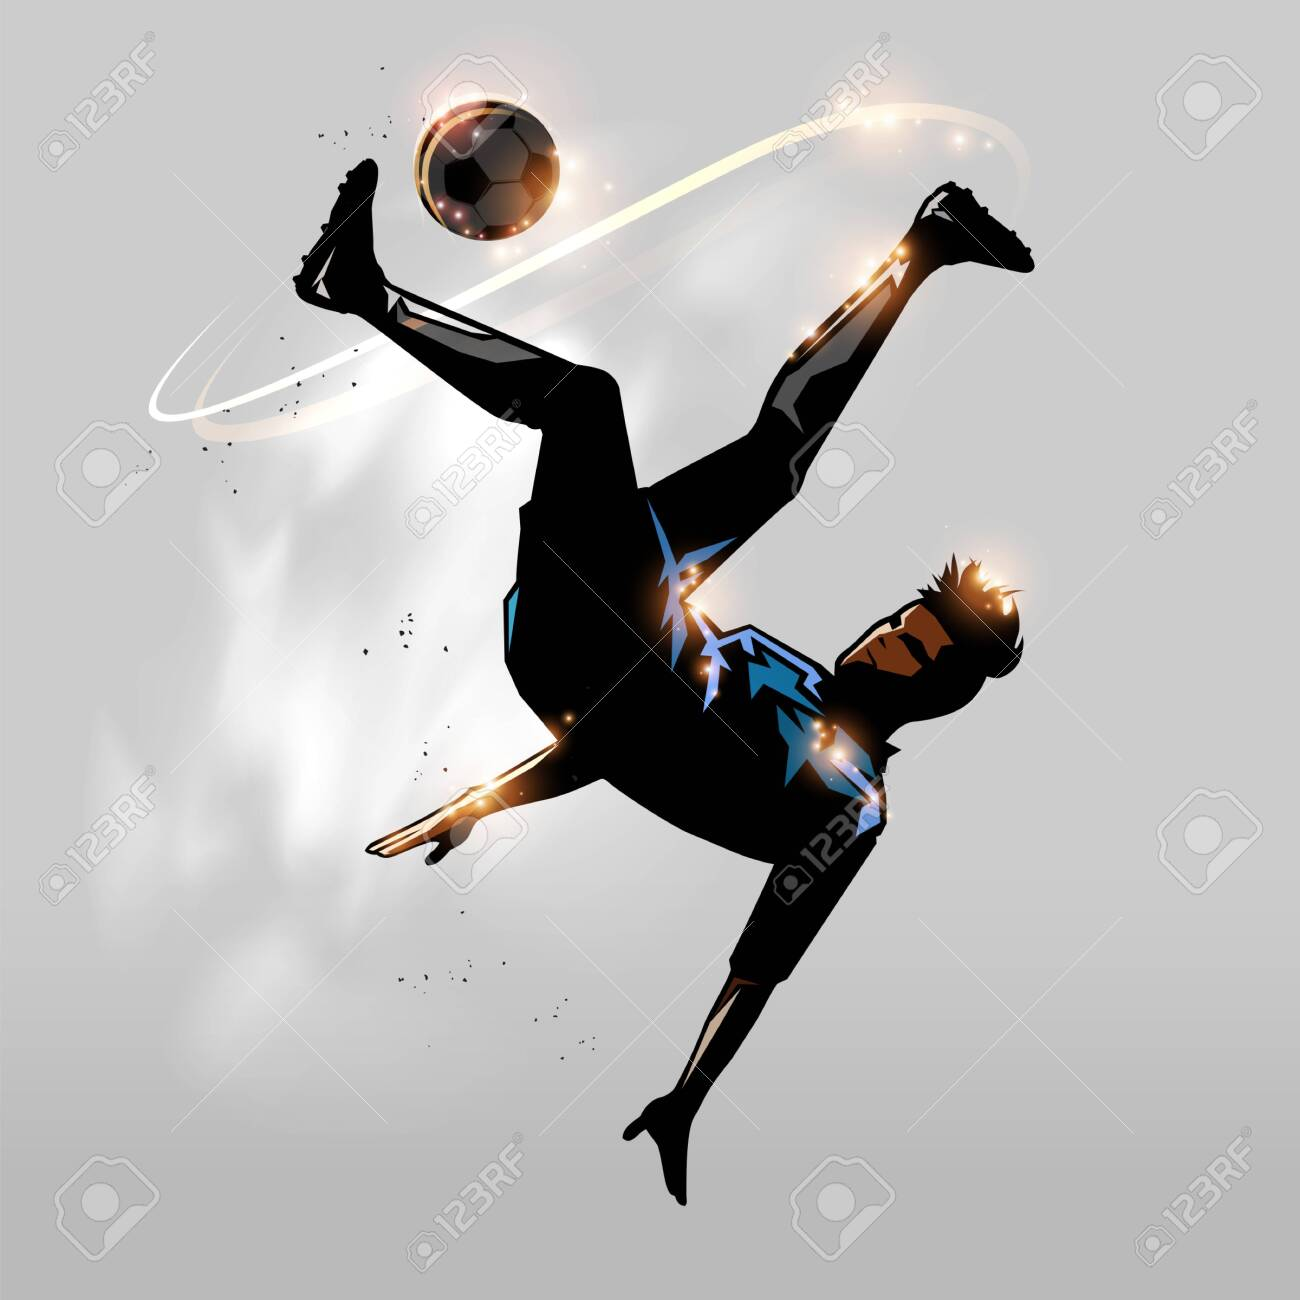 soccer player over head kick in the air design - 131871342